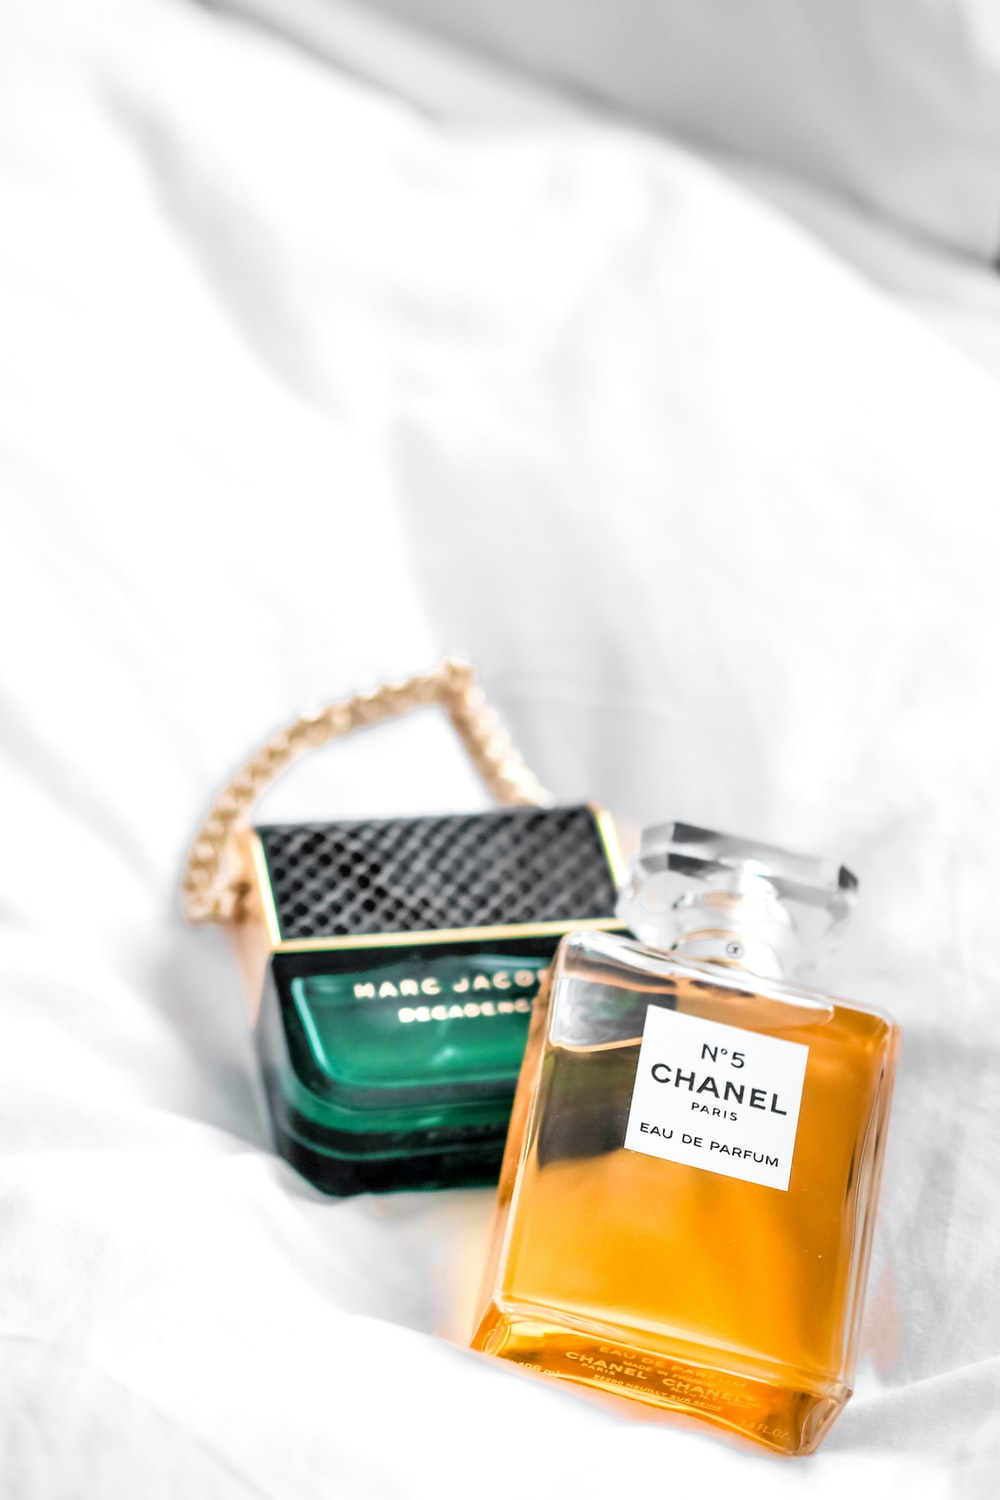 gold and green perfume bottle